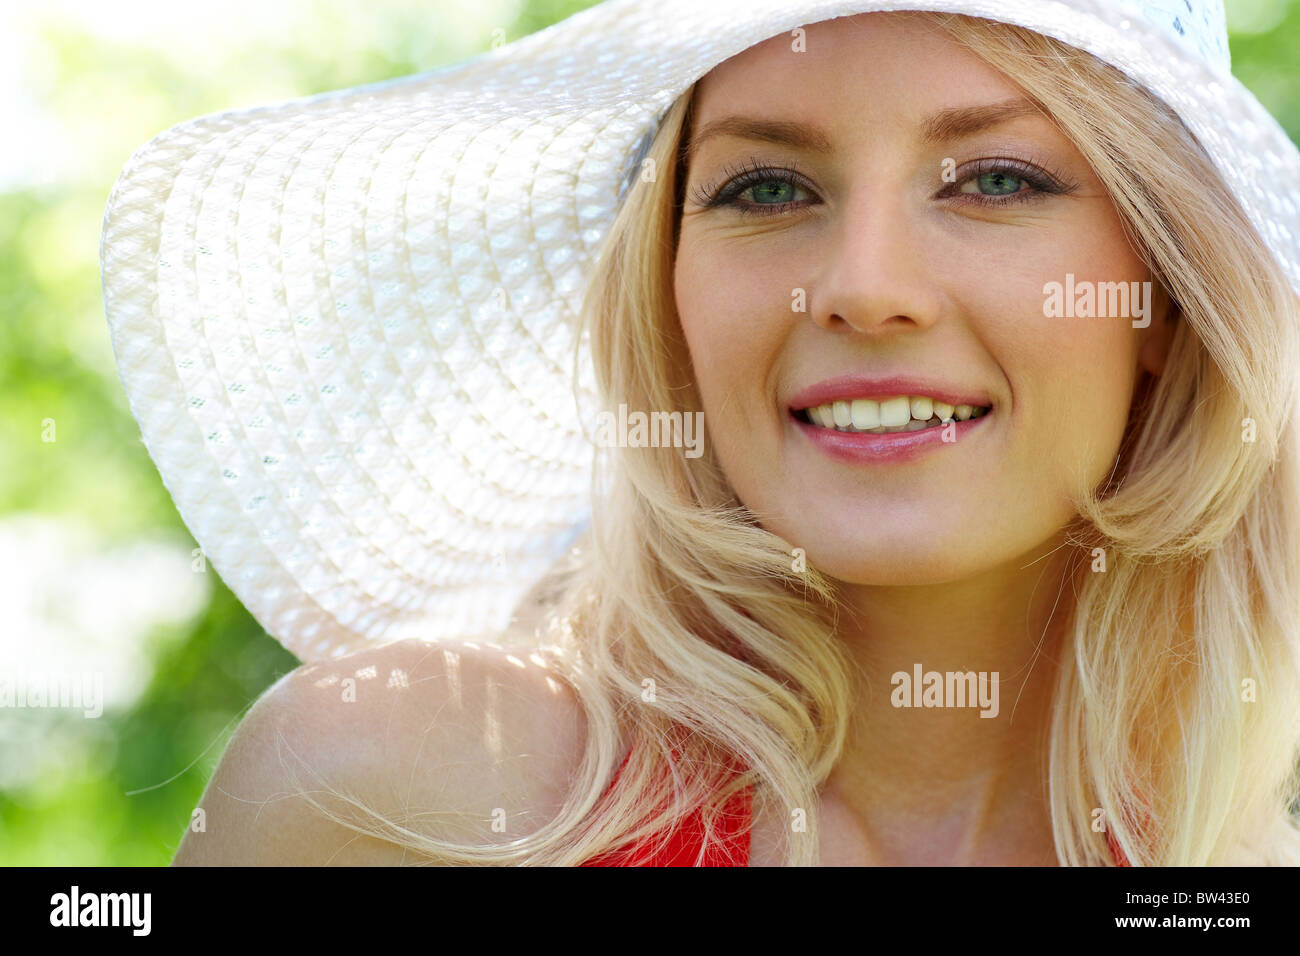 Pretty young lady in elegant hat smiling while looking at camera - Stock Image